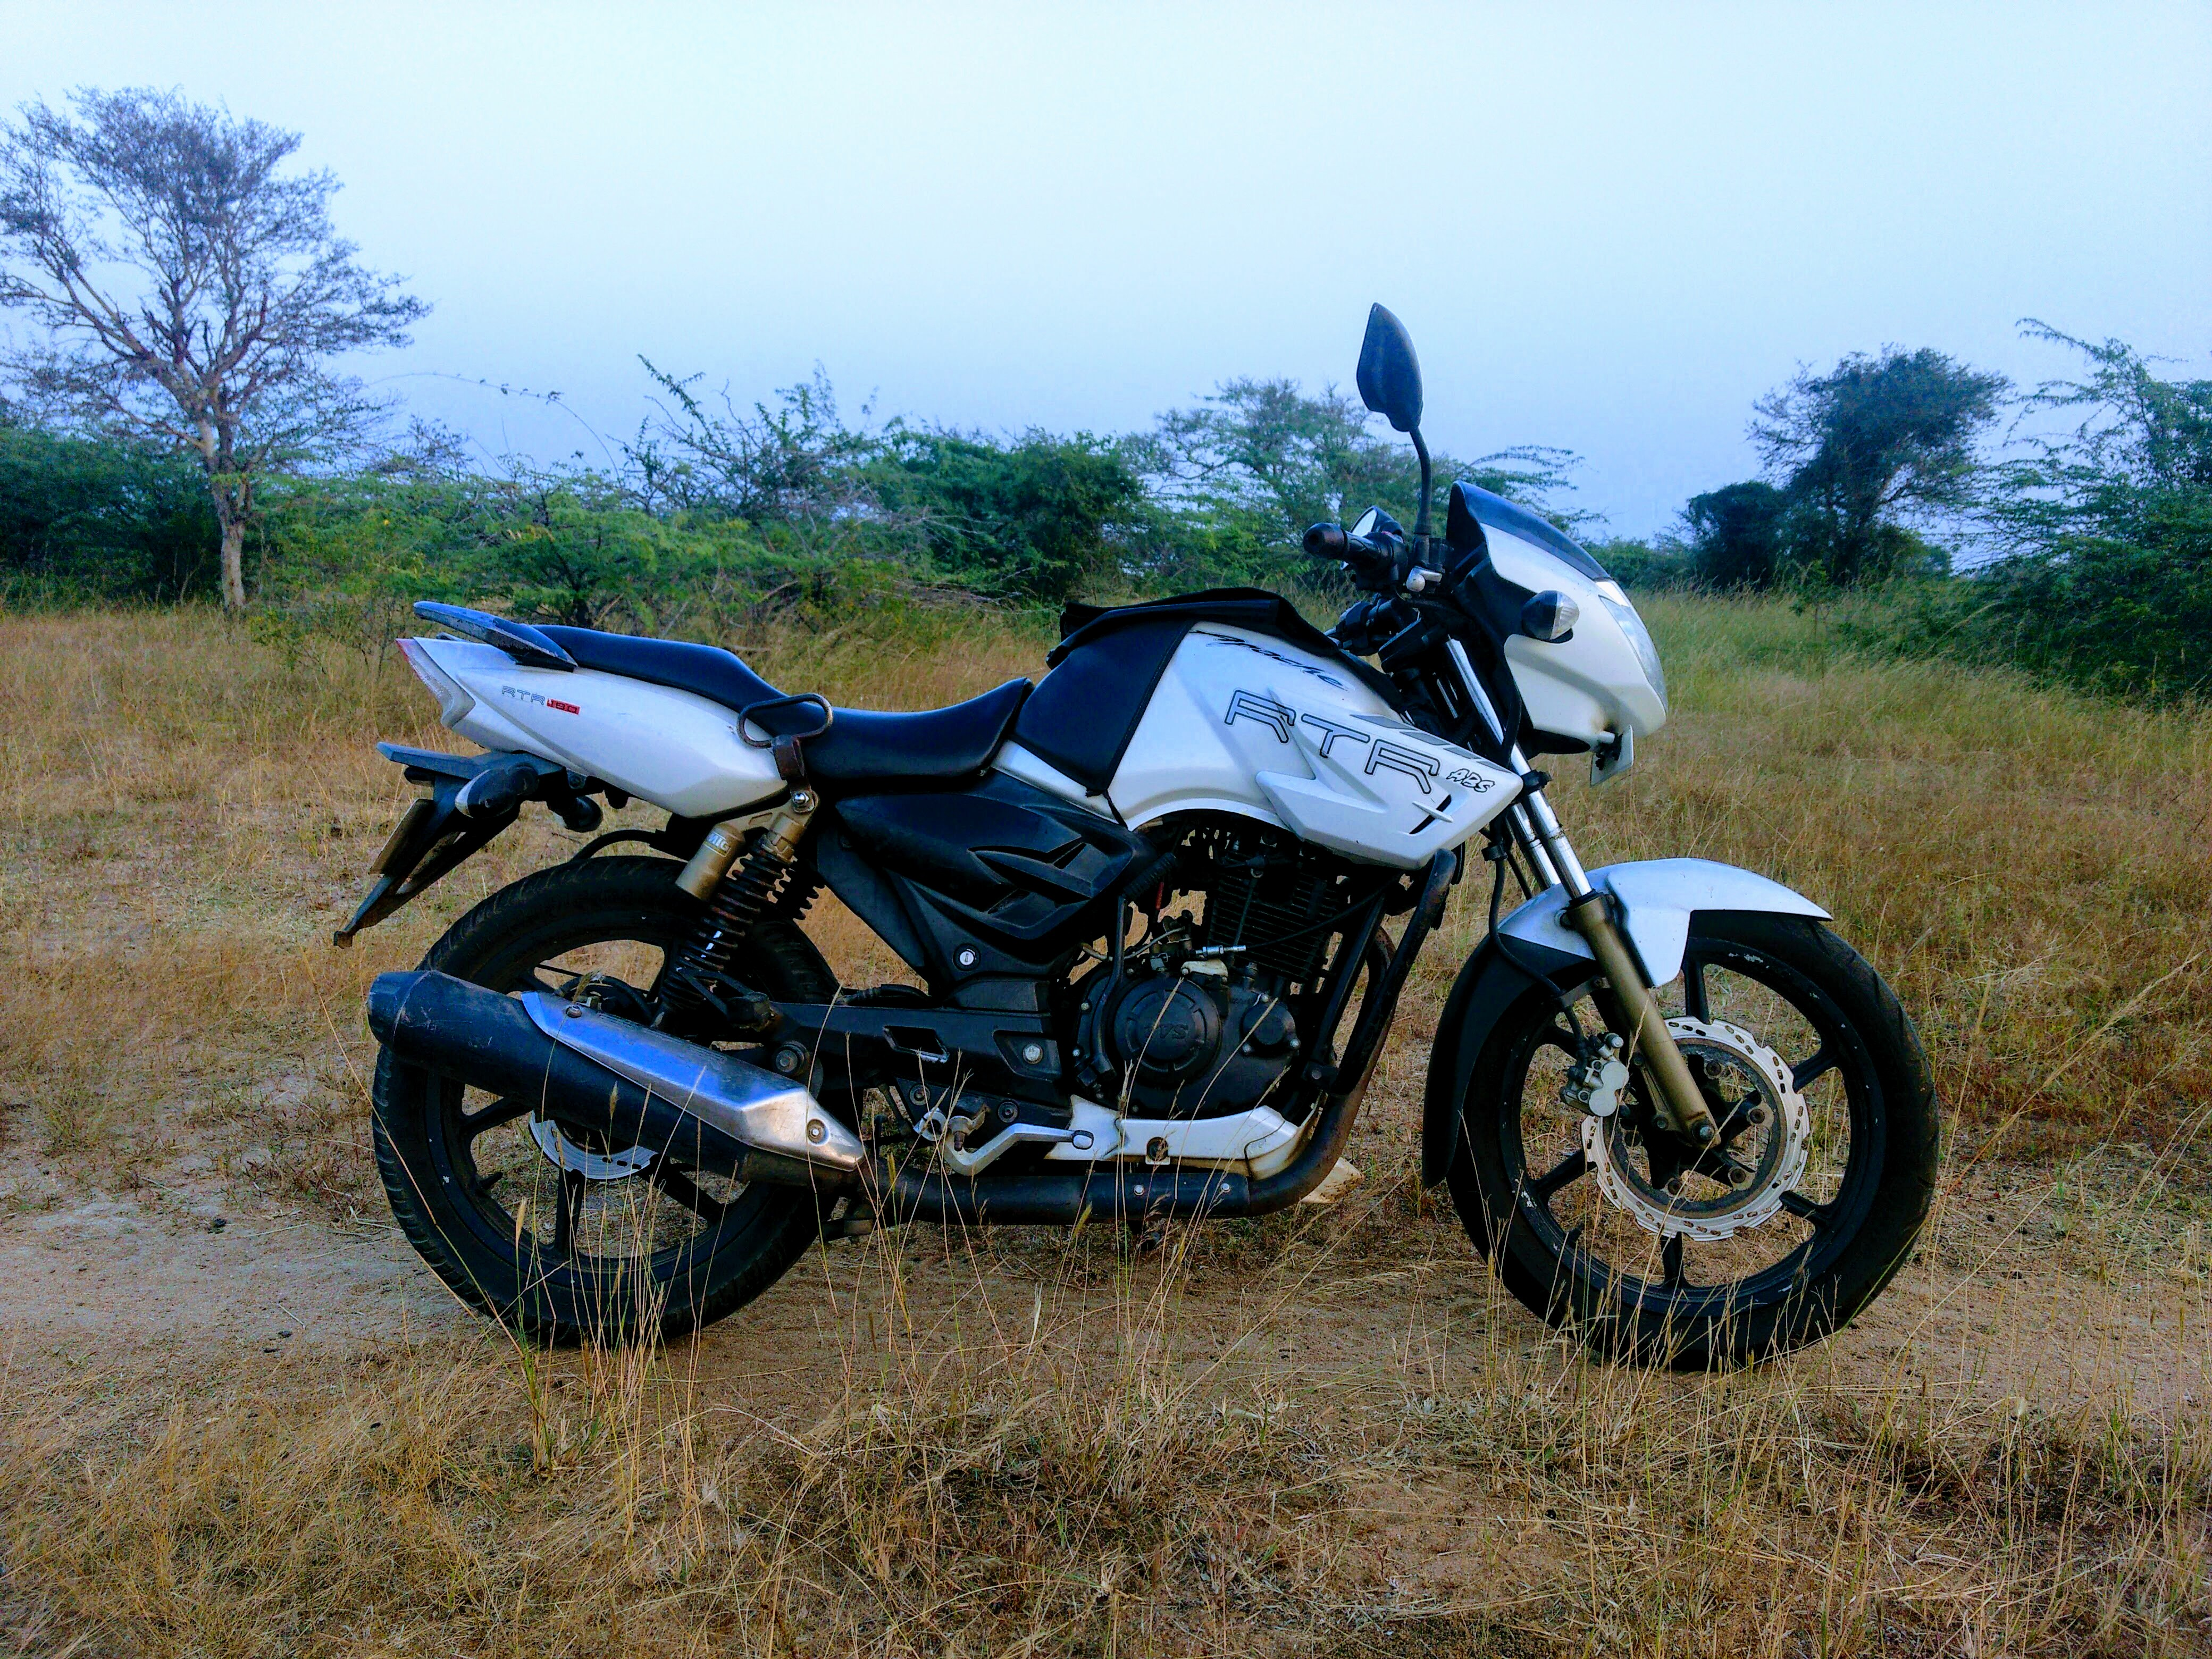 File:TVS Apache RTR 180 ABS 2011 model parked  jpg - Wikipedia